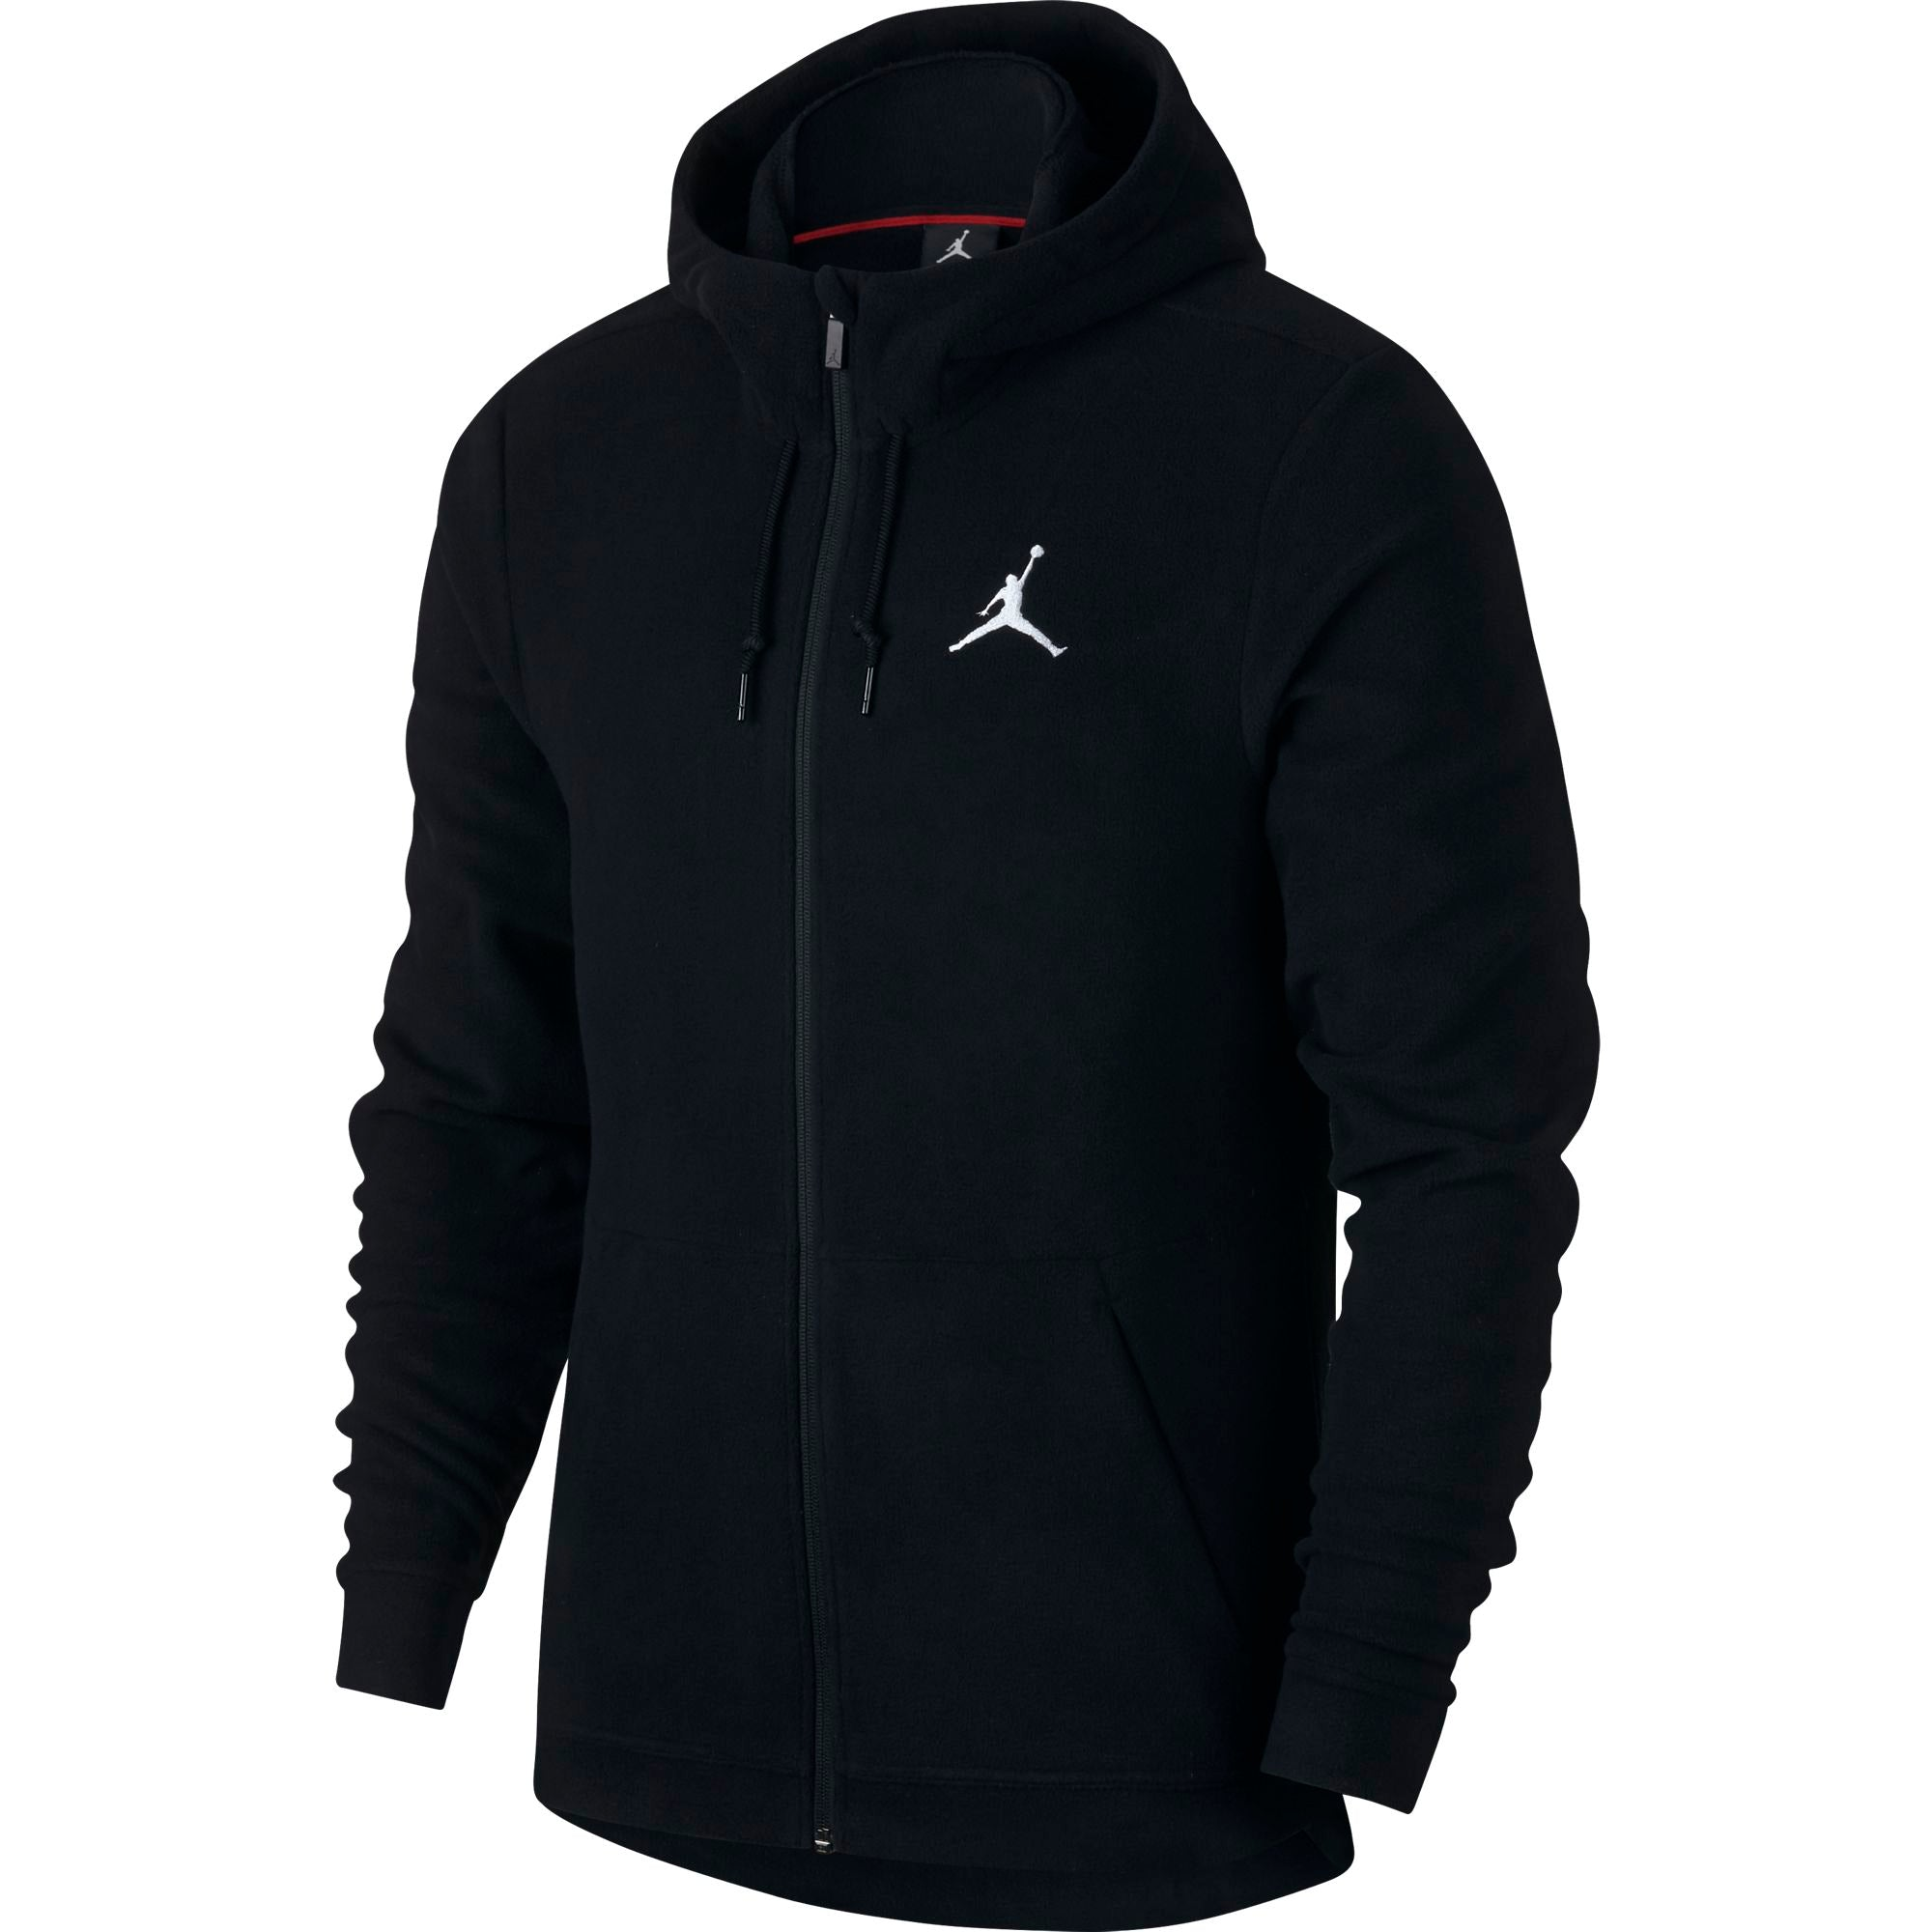 Nike Jordan Therma 23 Tech Full Zip Training Hoodie - NK-926444-010